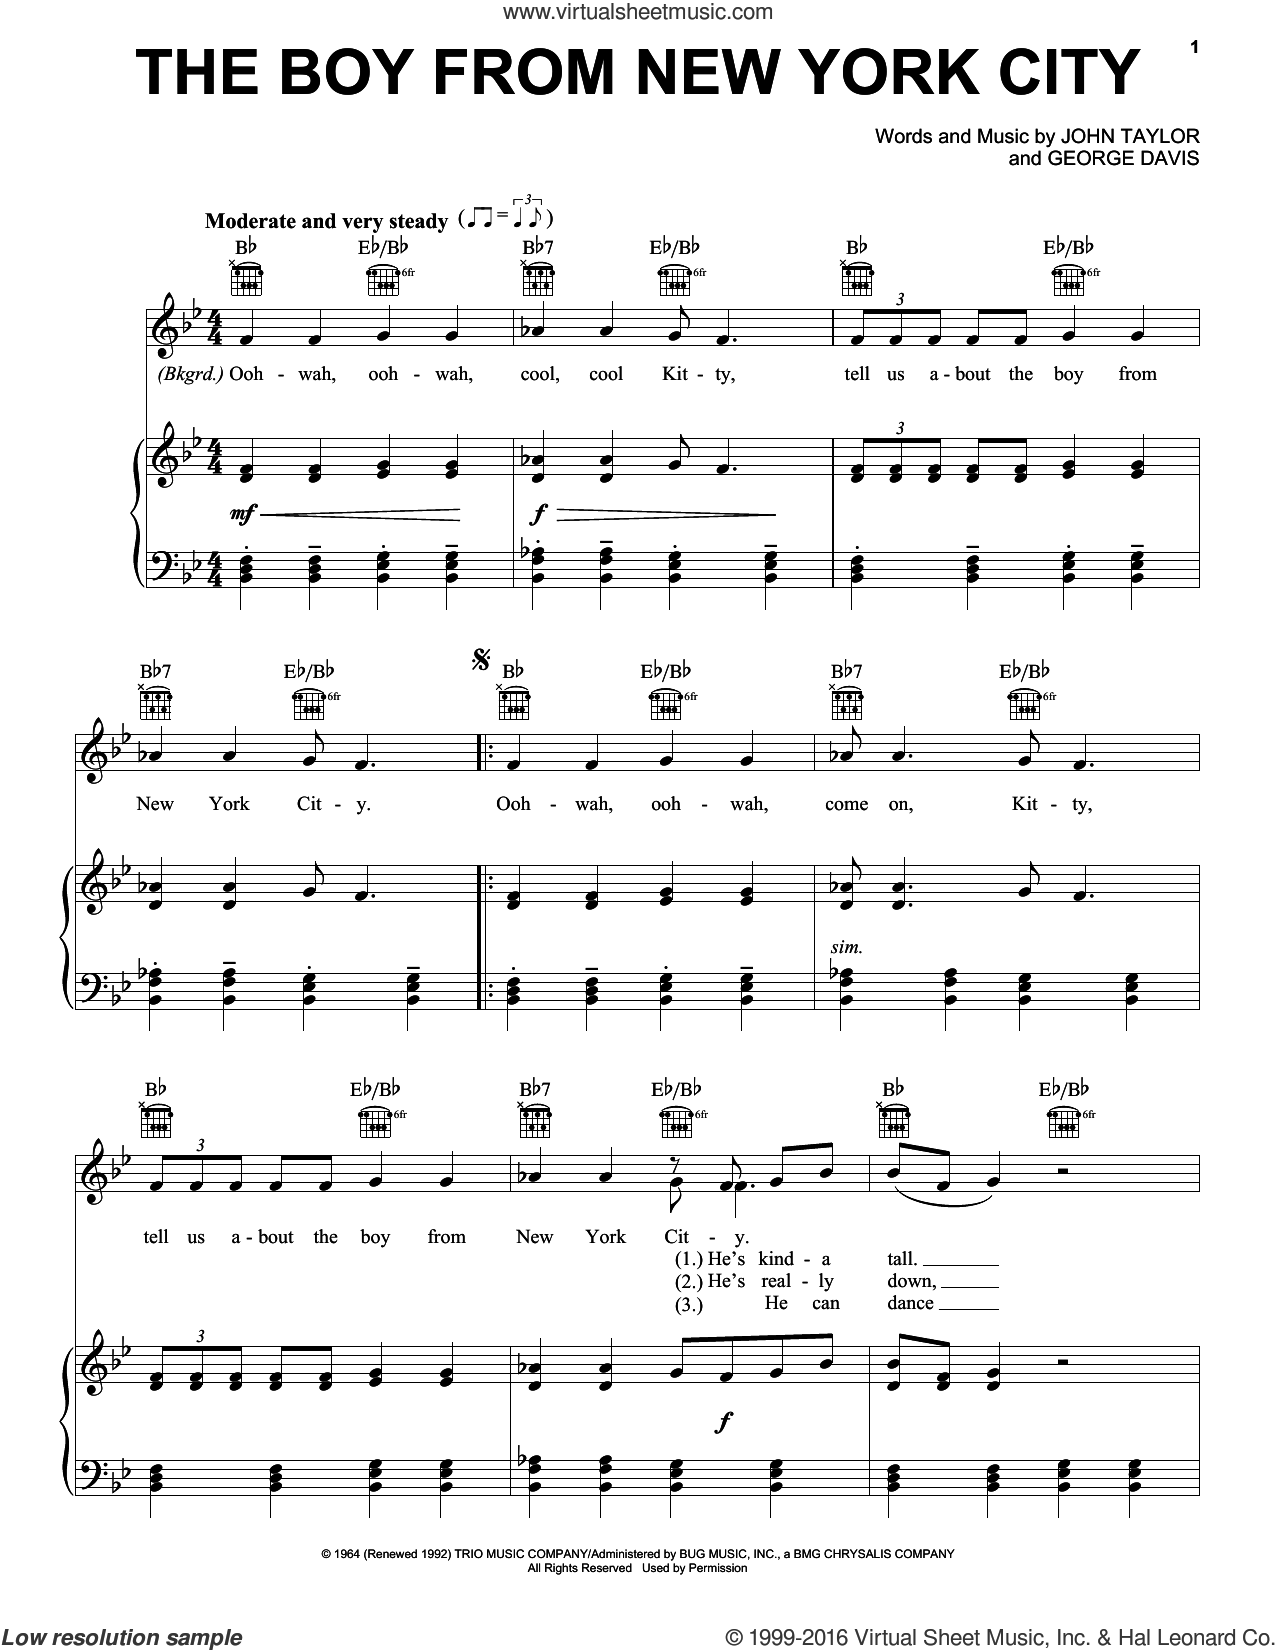 The Boy From New York City sheet music for voice, piano or guitar by John Taylor, Manhattan Transfer and George Davis. Score Image Preview.